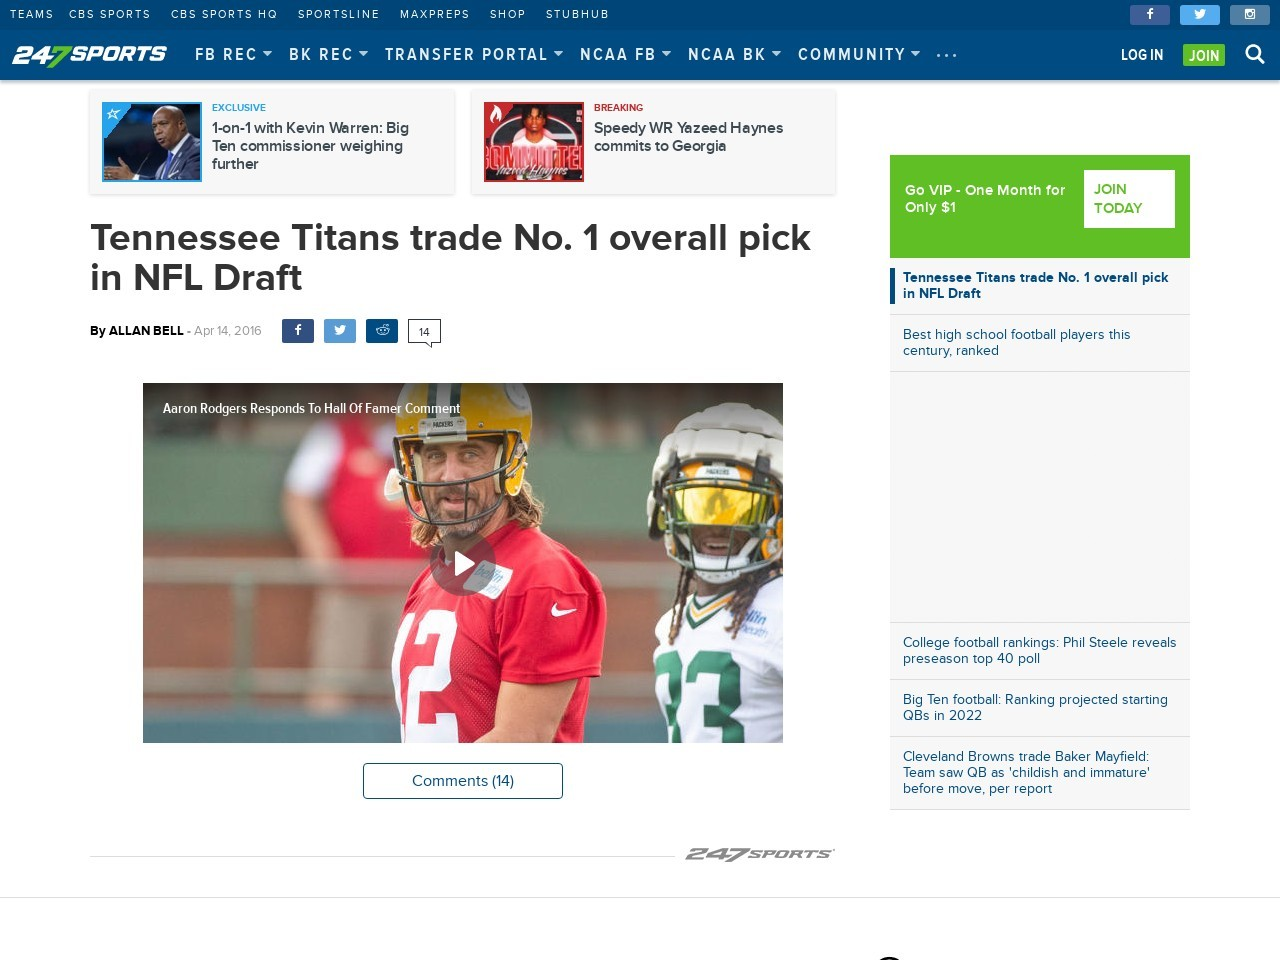 Tennessee Titans trade No. 1 overall pick in NFL Draft